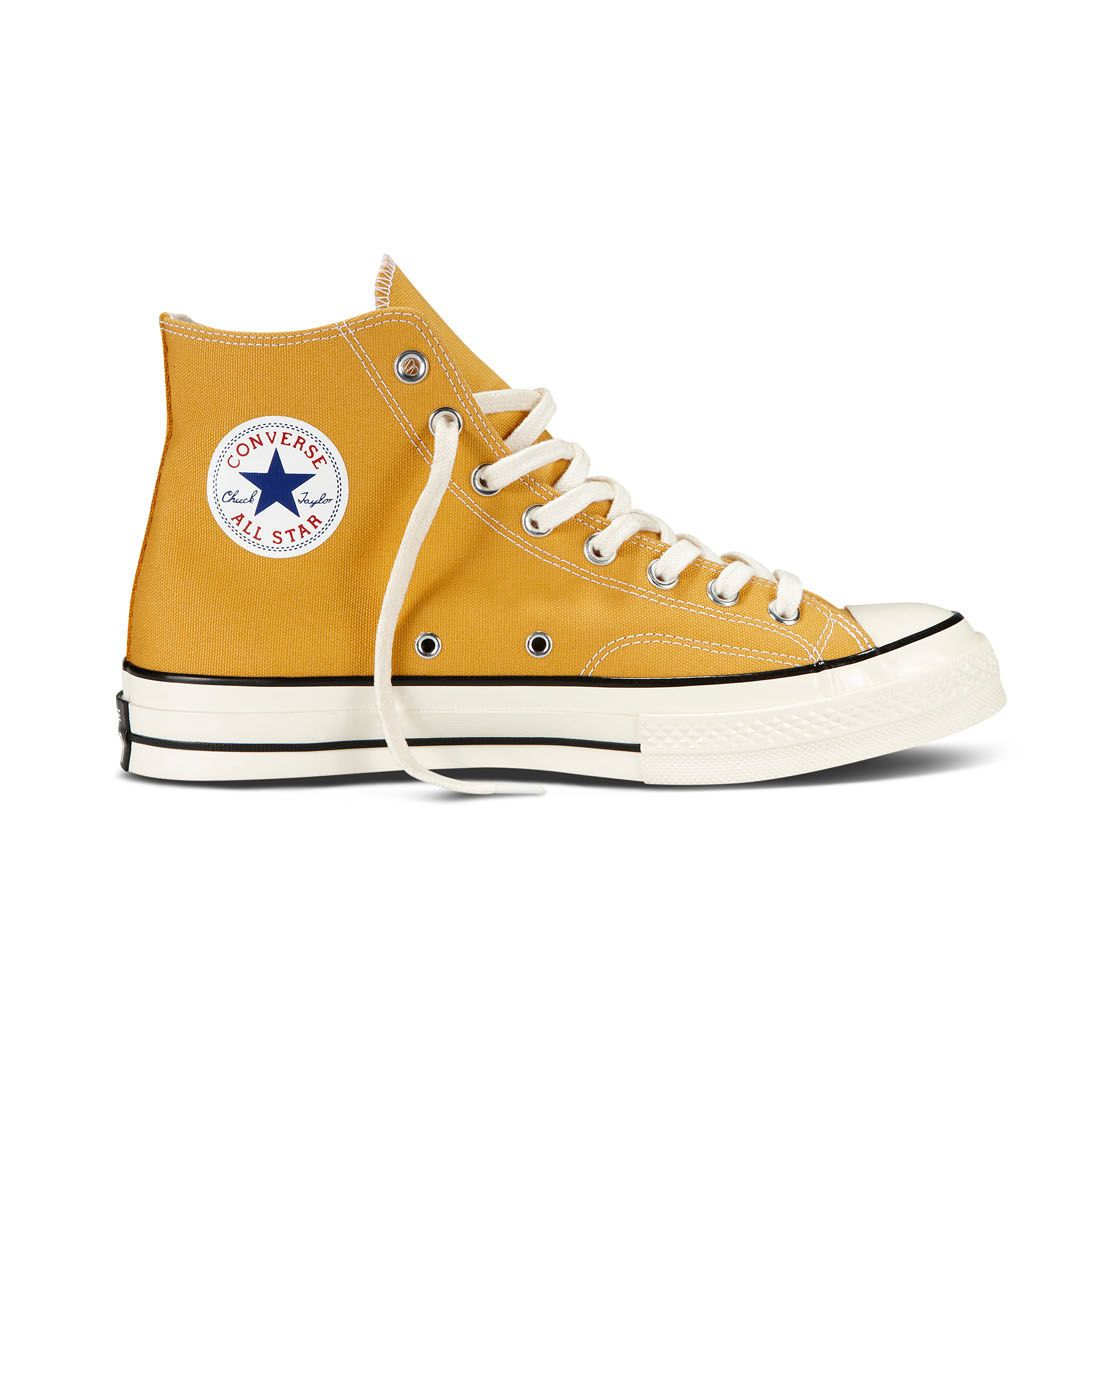 Original Yellow 70s Chucks Sneakers for men CONVERSE  cb2a8230f